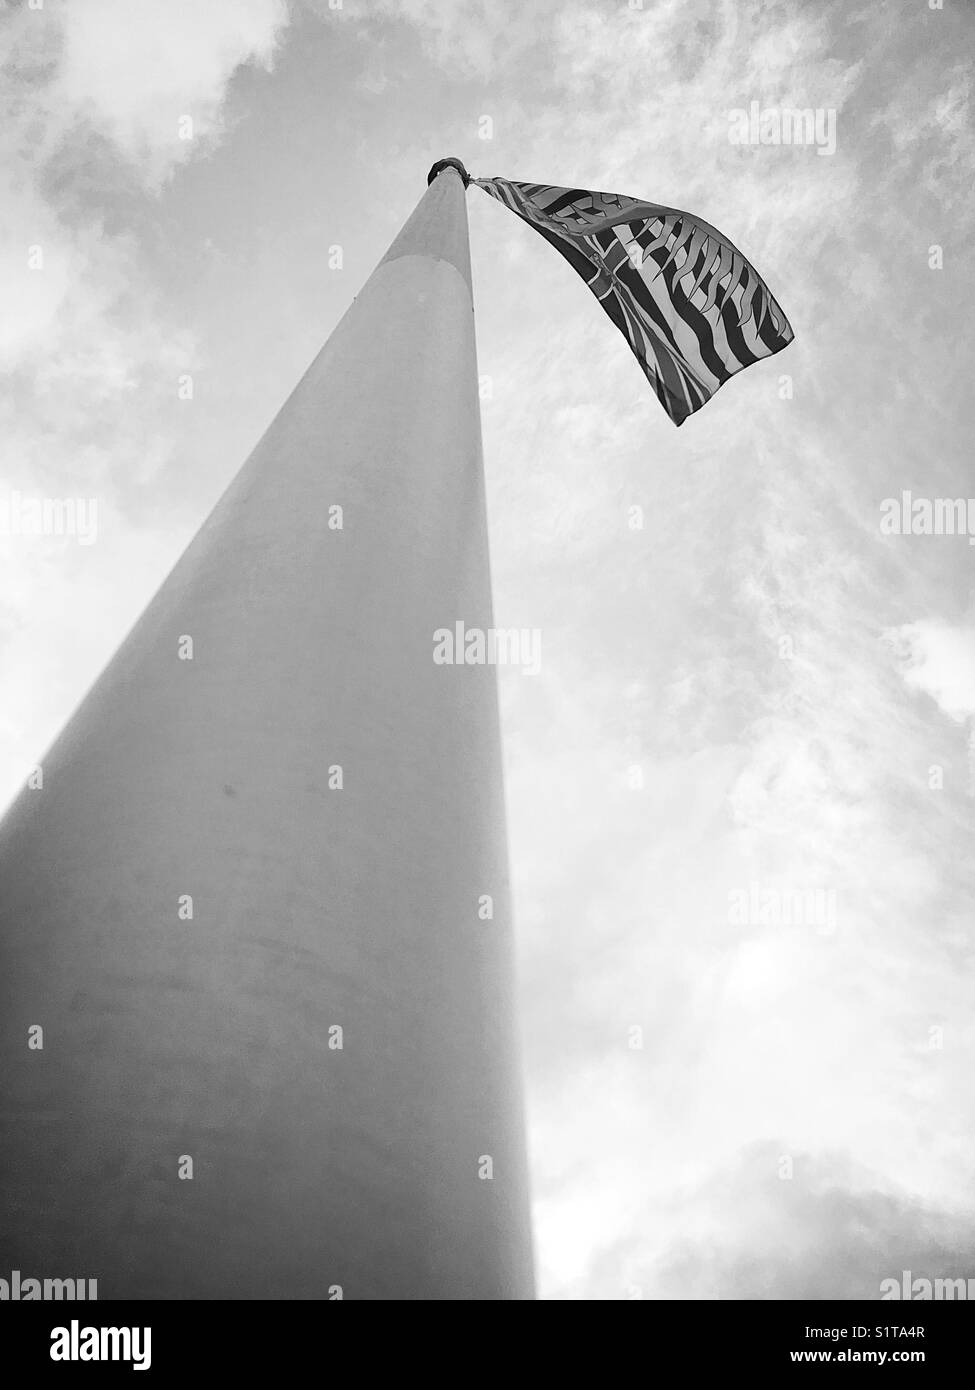 British Columbia, Canada's flag flying on flagpole. - Stock Image